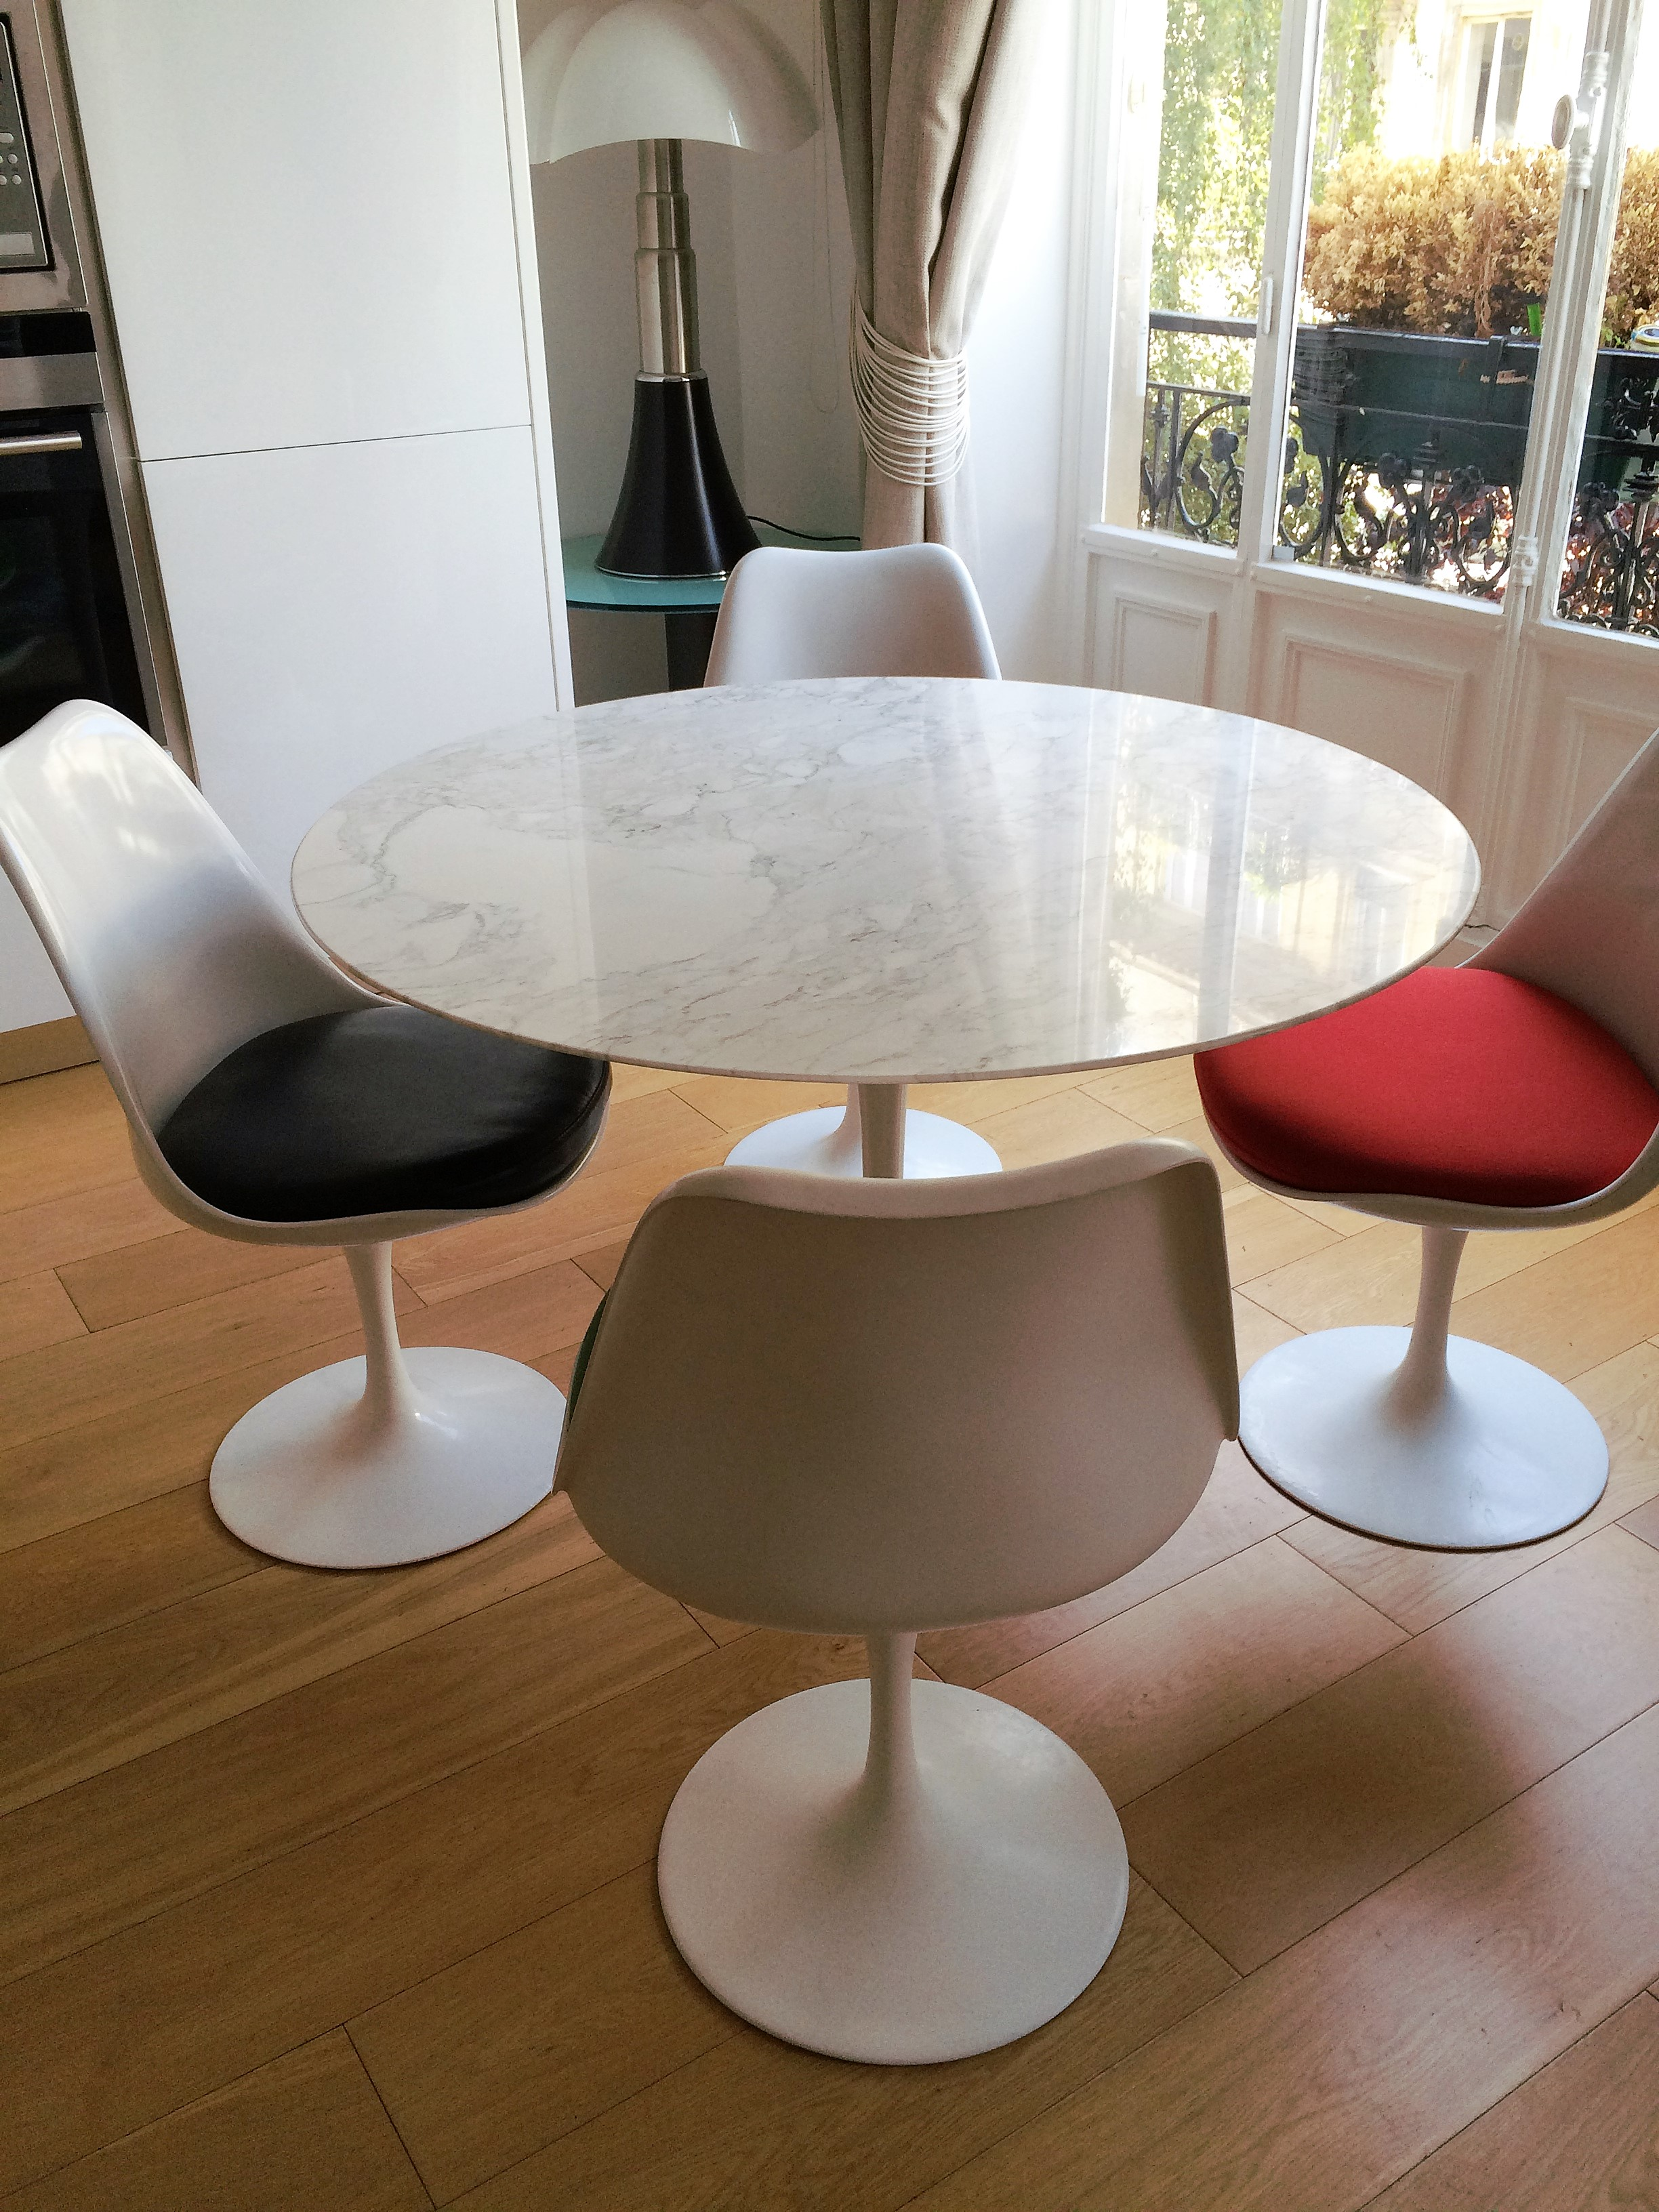 Table tulipe en marbre Saarinen édition Knoll